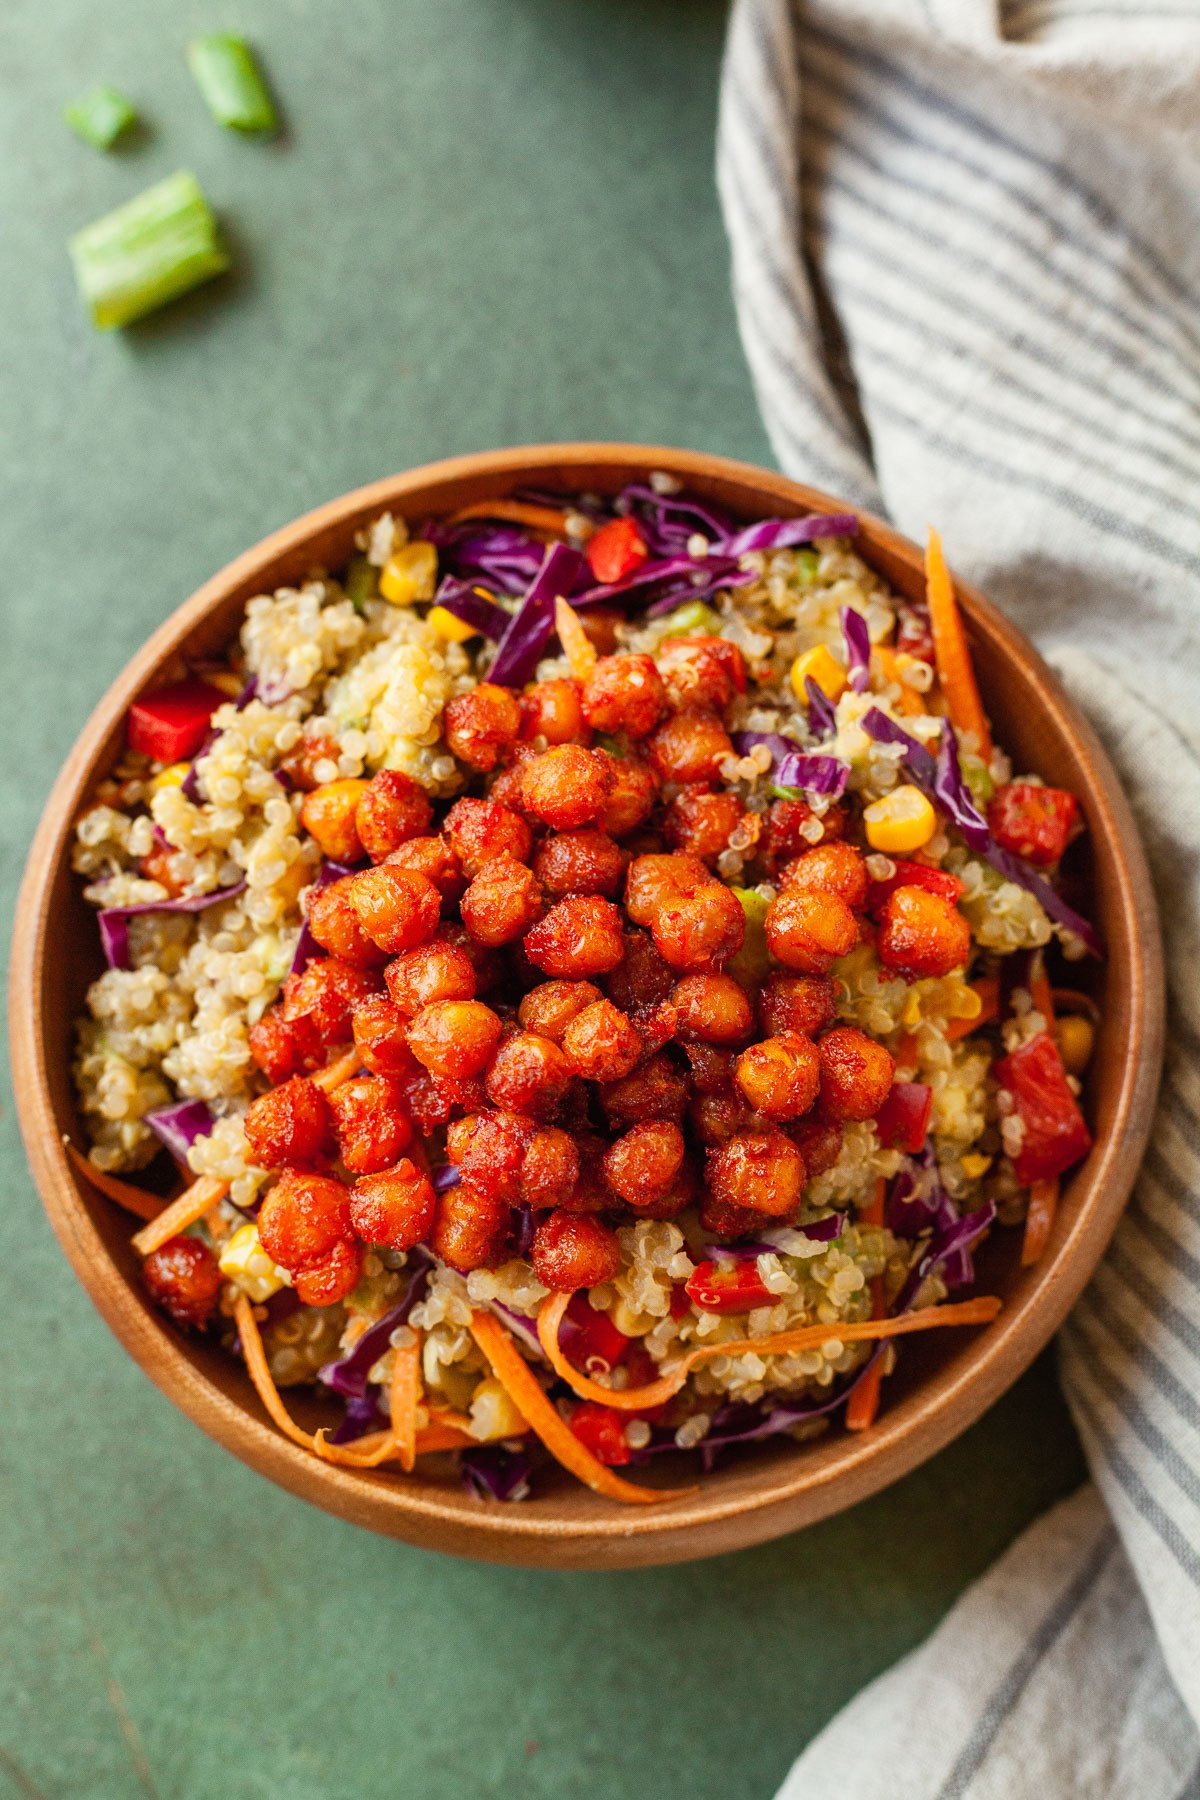 a bowl of vegan quinoa salad on a green table with a napkin